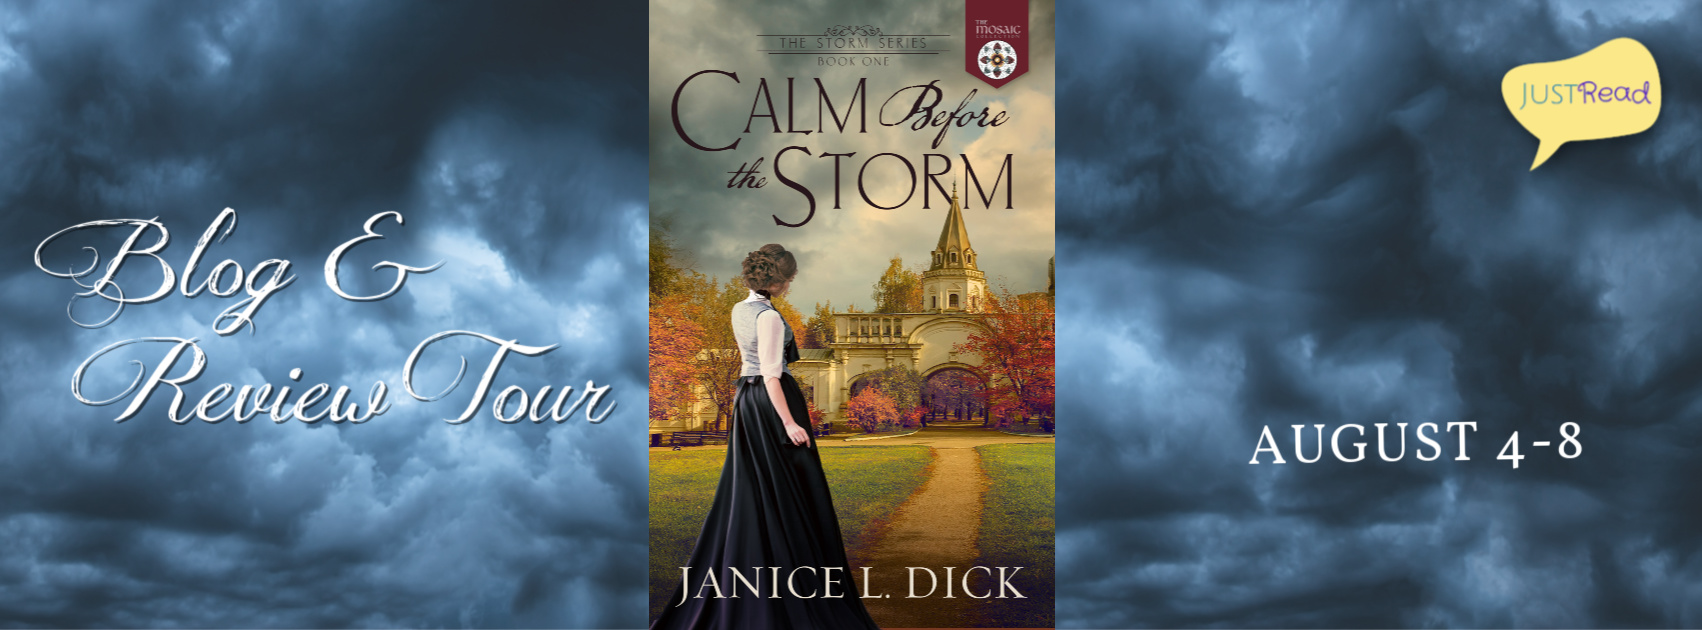 Welcome to the Calm Before the Storm Blog Tour & Giveaway!